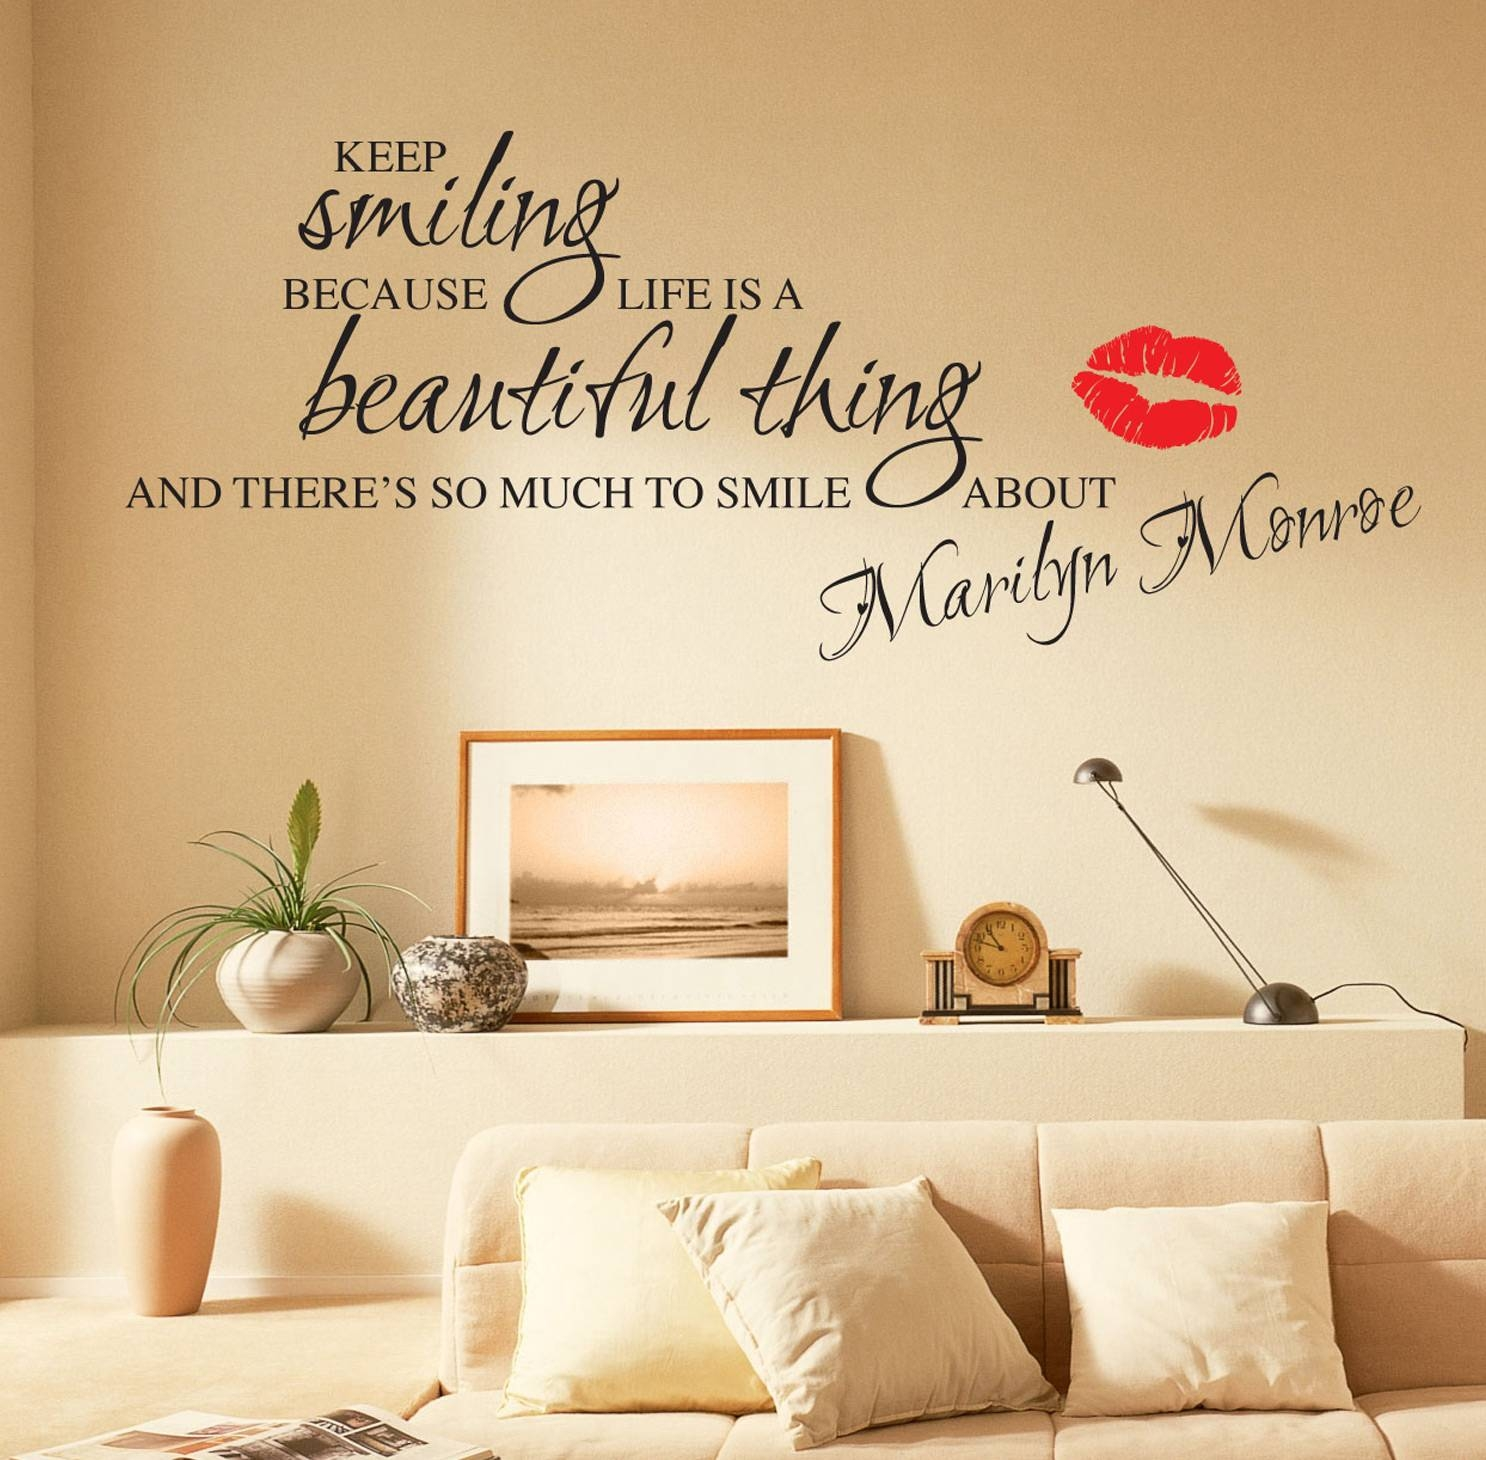 Marilyn Monroe Wall Stickers Quotes Art Decals W55 | Ebay For Most Current Marilyn Monroe Wall Art (View 14 of 25)